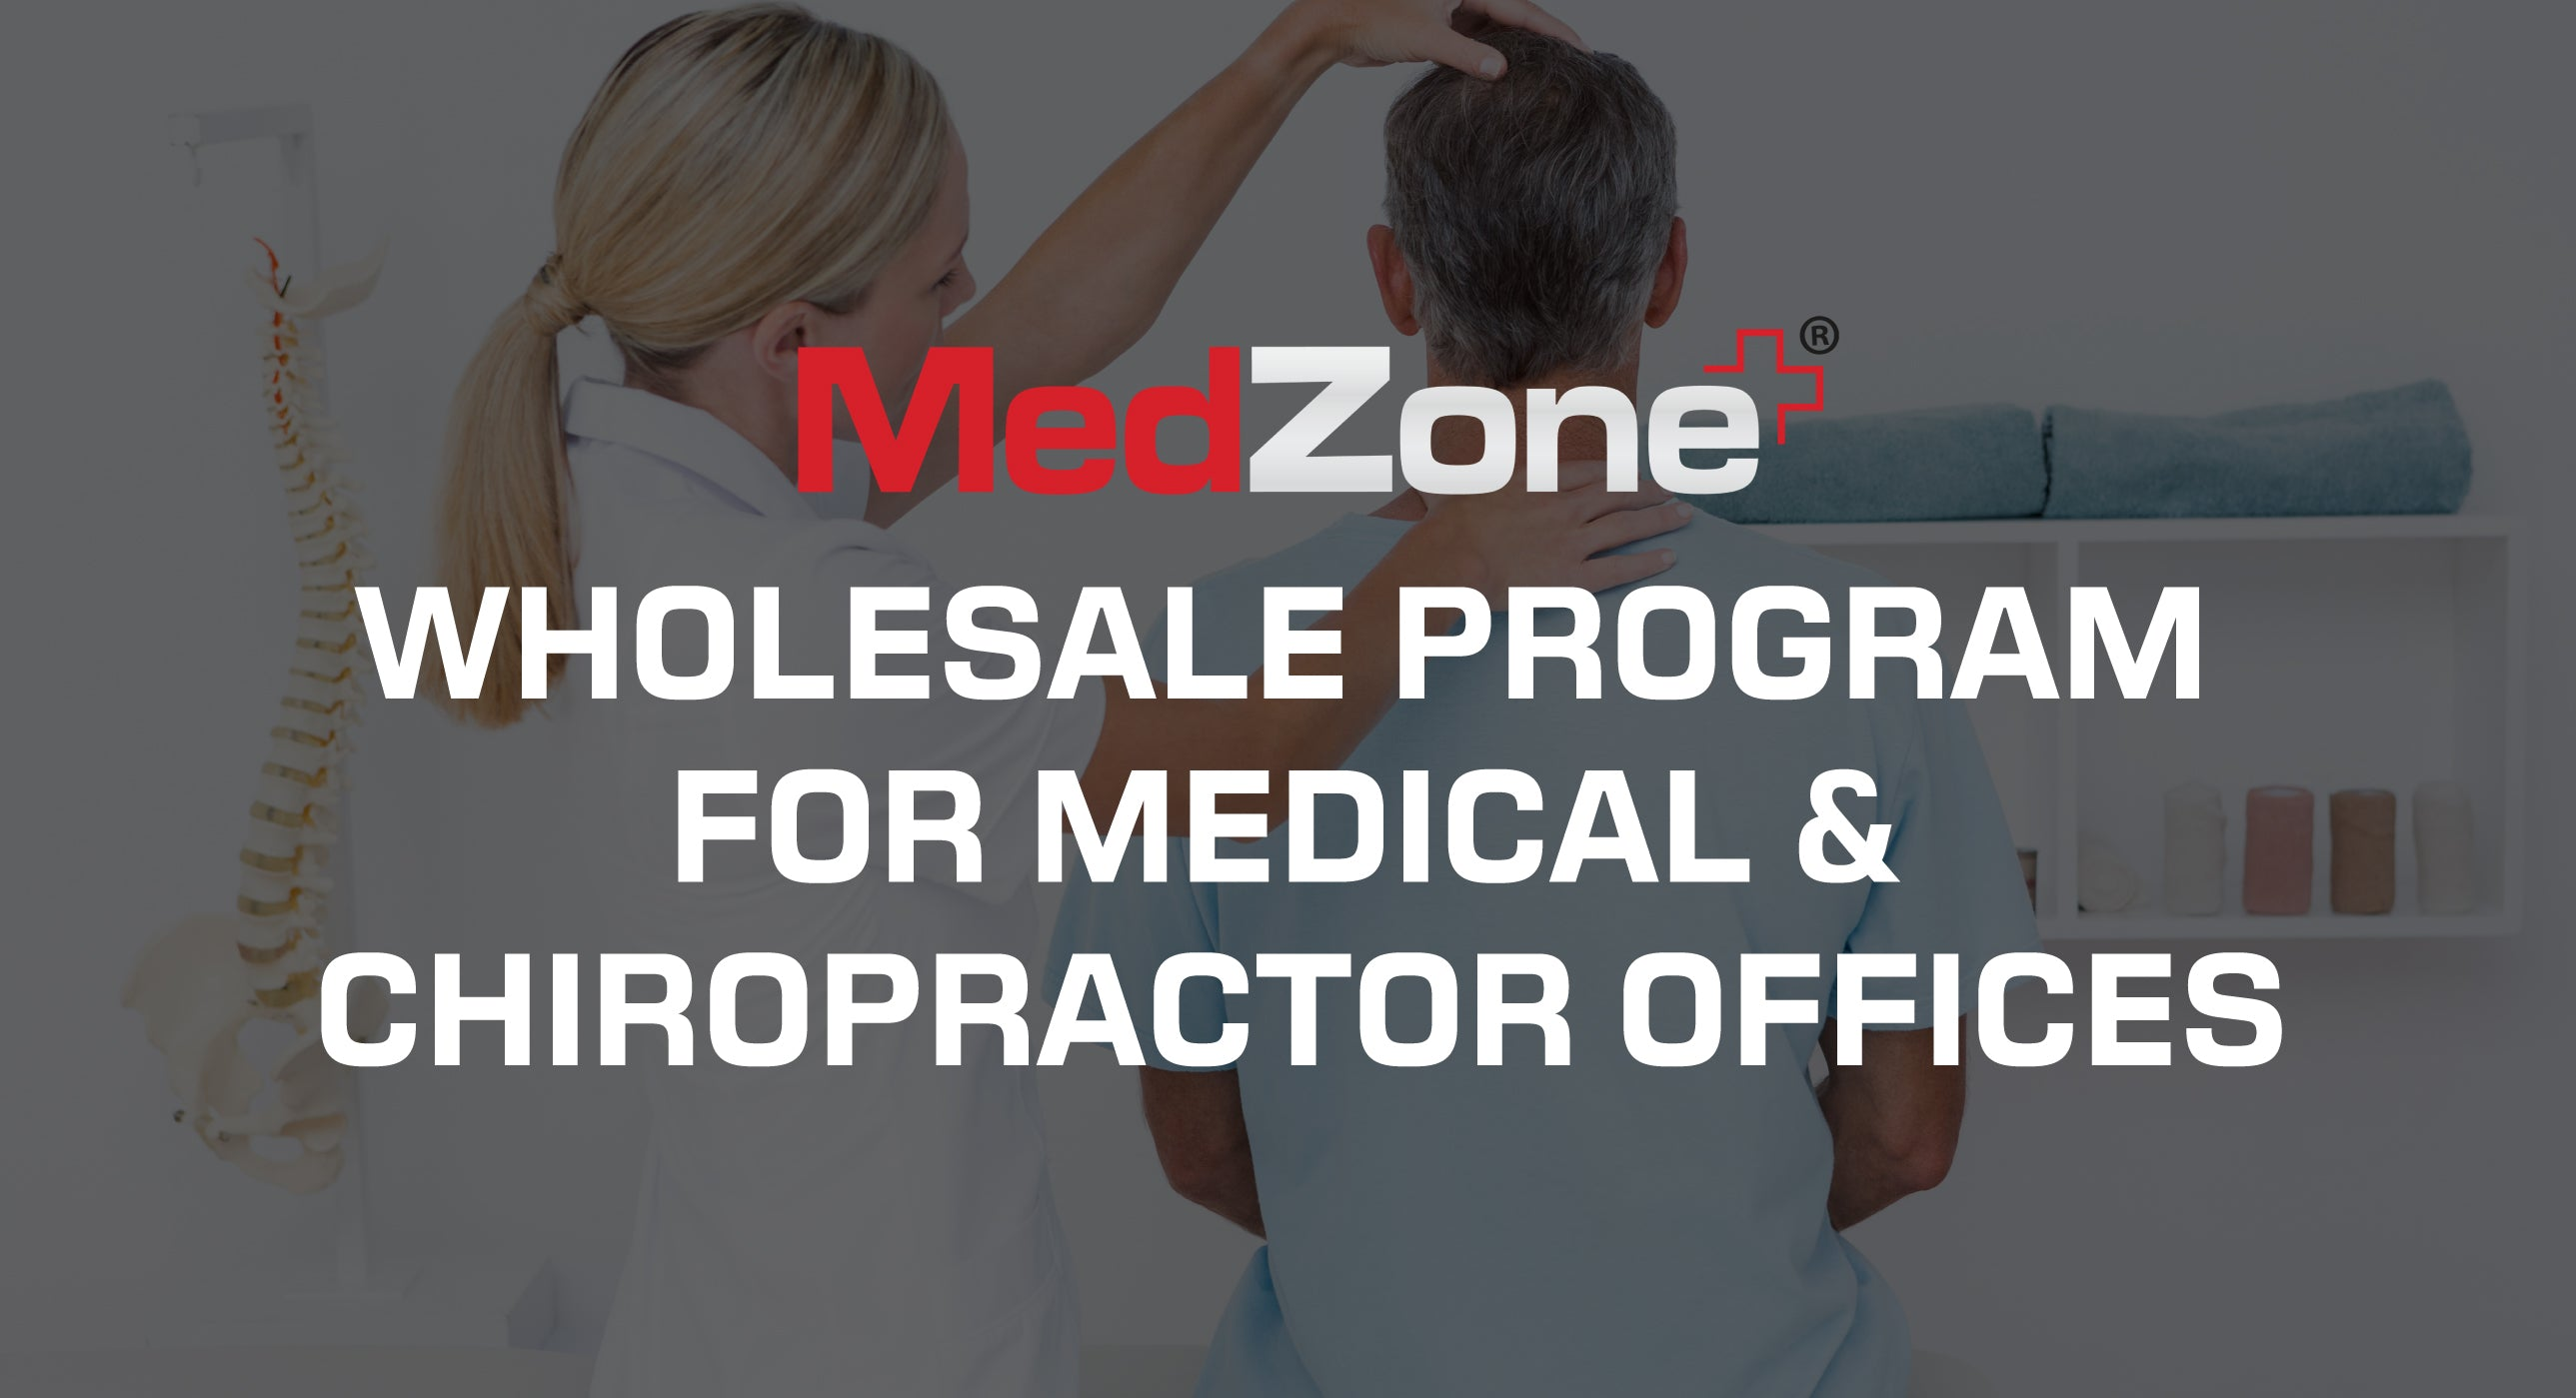 MedZone Announces Wholesale Program for Medical & Chiropractor Offices